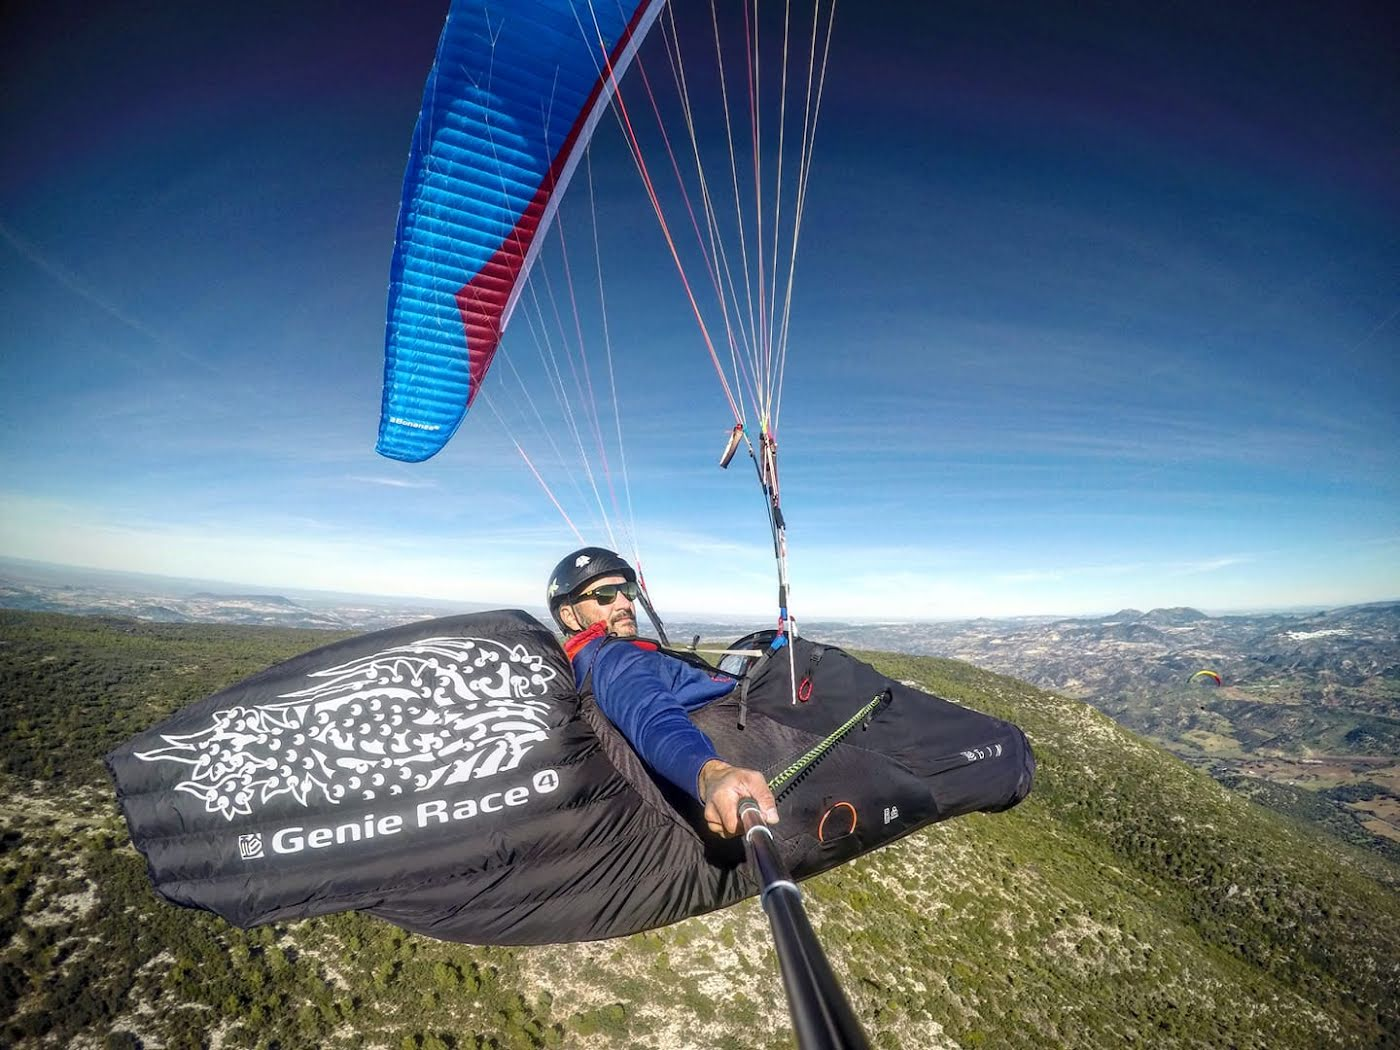 Our Man Stan on winning paragliding street this Summer!